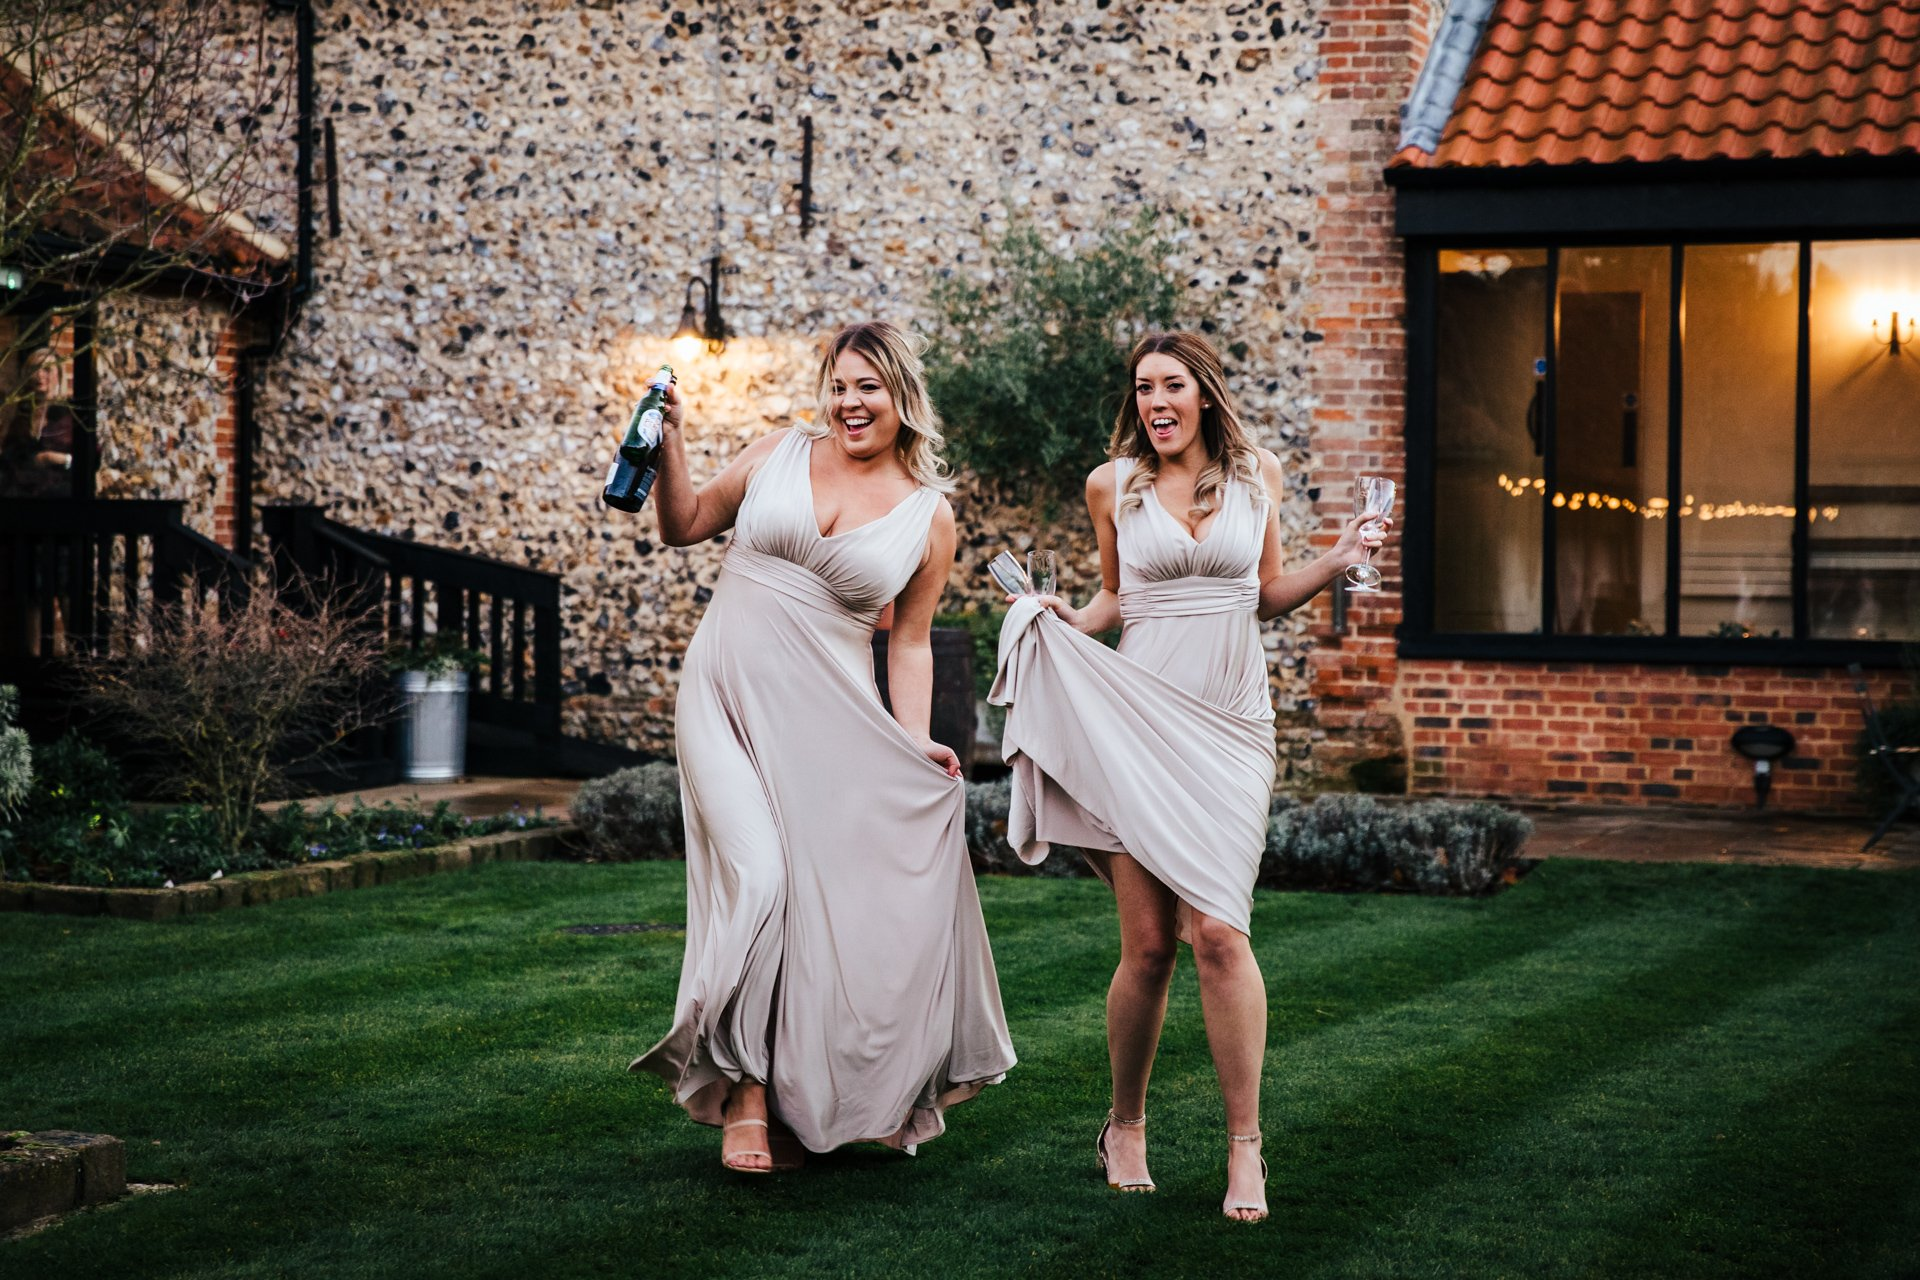 bridesmaid with Prosecco during wedding portraits